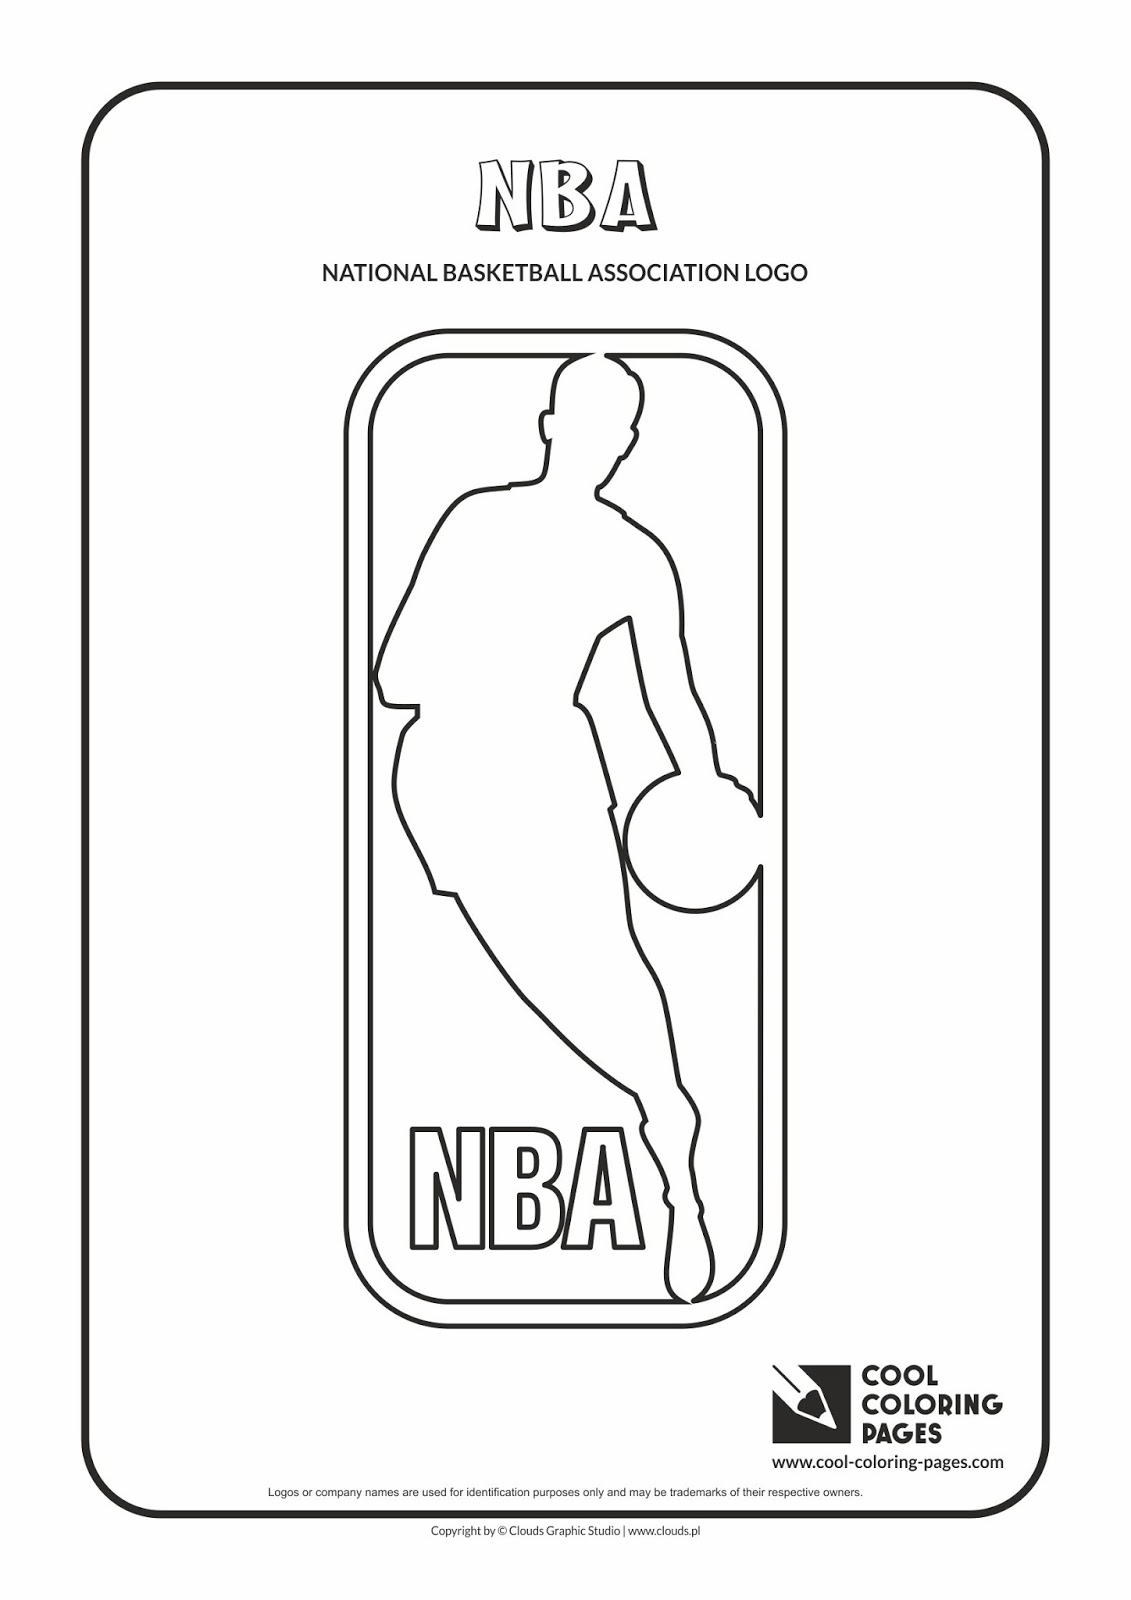 NBA Teams Logos Coloring Pages For Kids